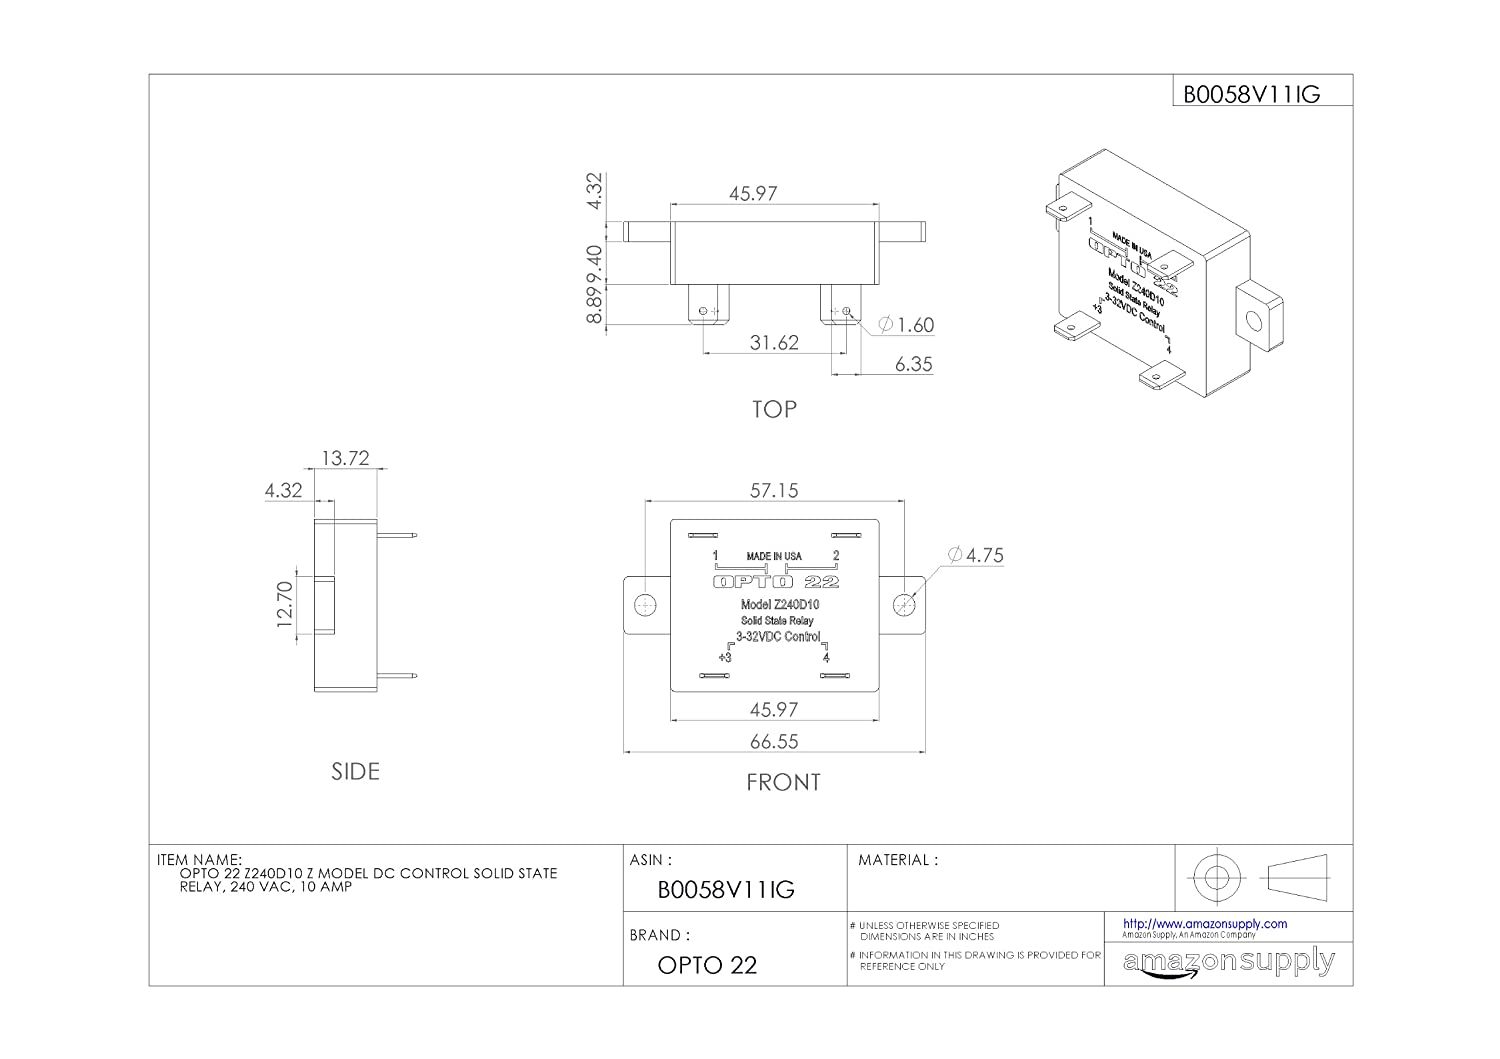 Opto 22 Ssr Wiring Diagram Library Relay Z240d10 Z Model Dc Control Solid State 240 Vac 10 Amp